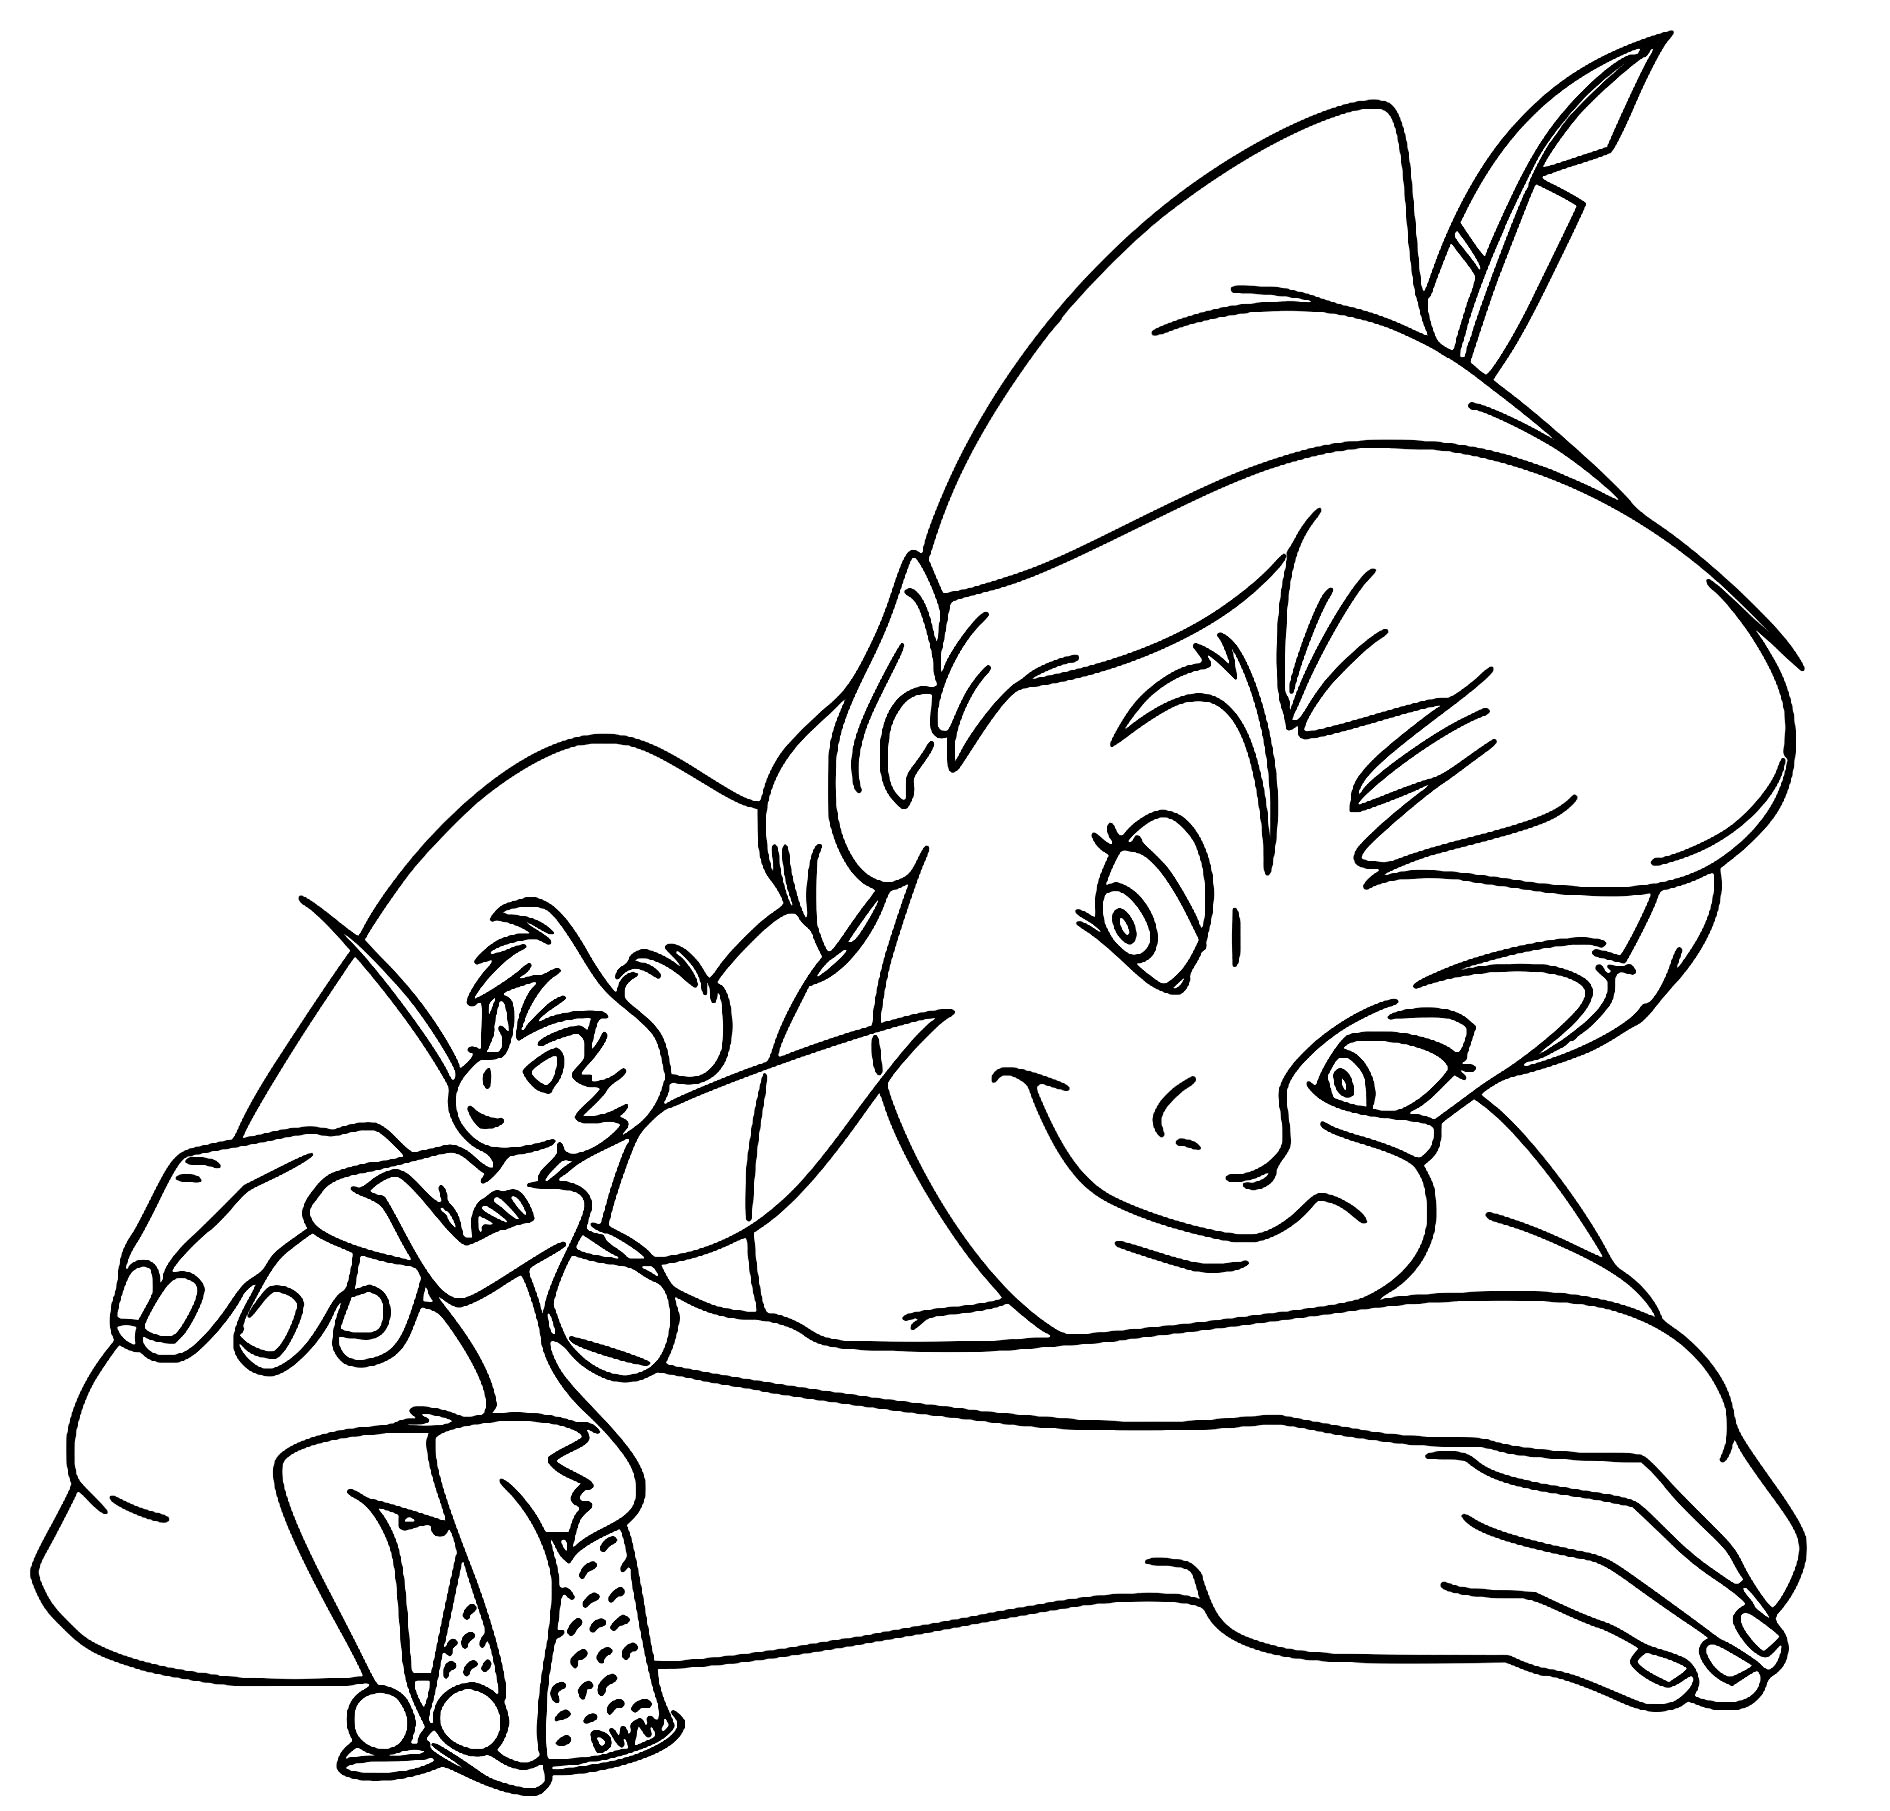 Tinkerbell And Peter Pan Coloring Pages To Print